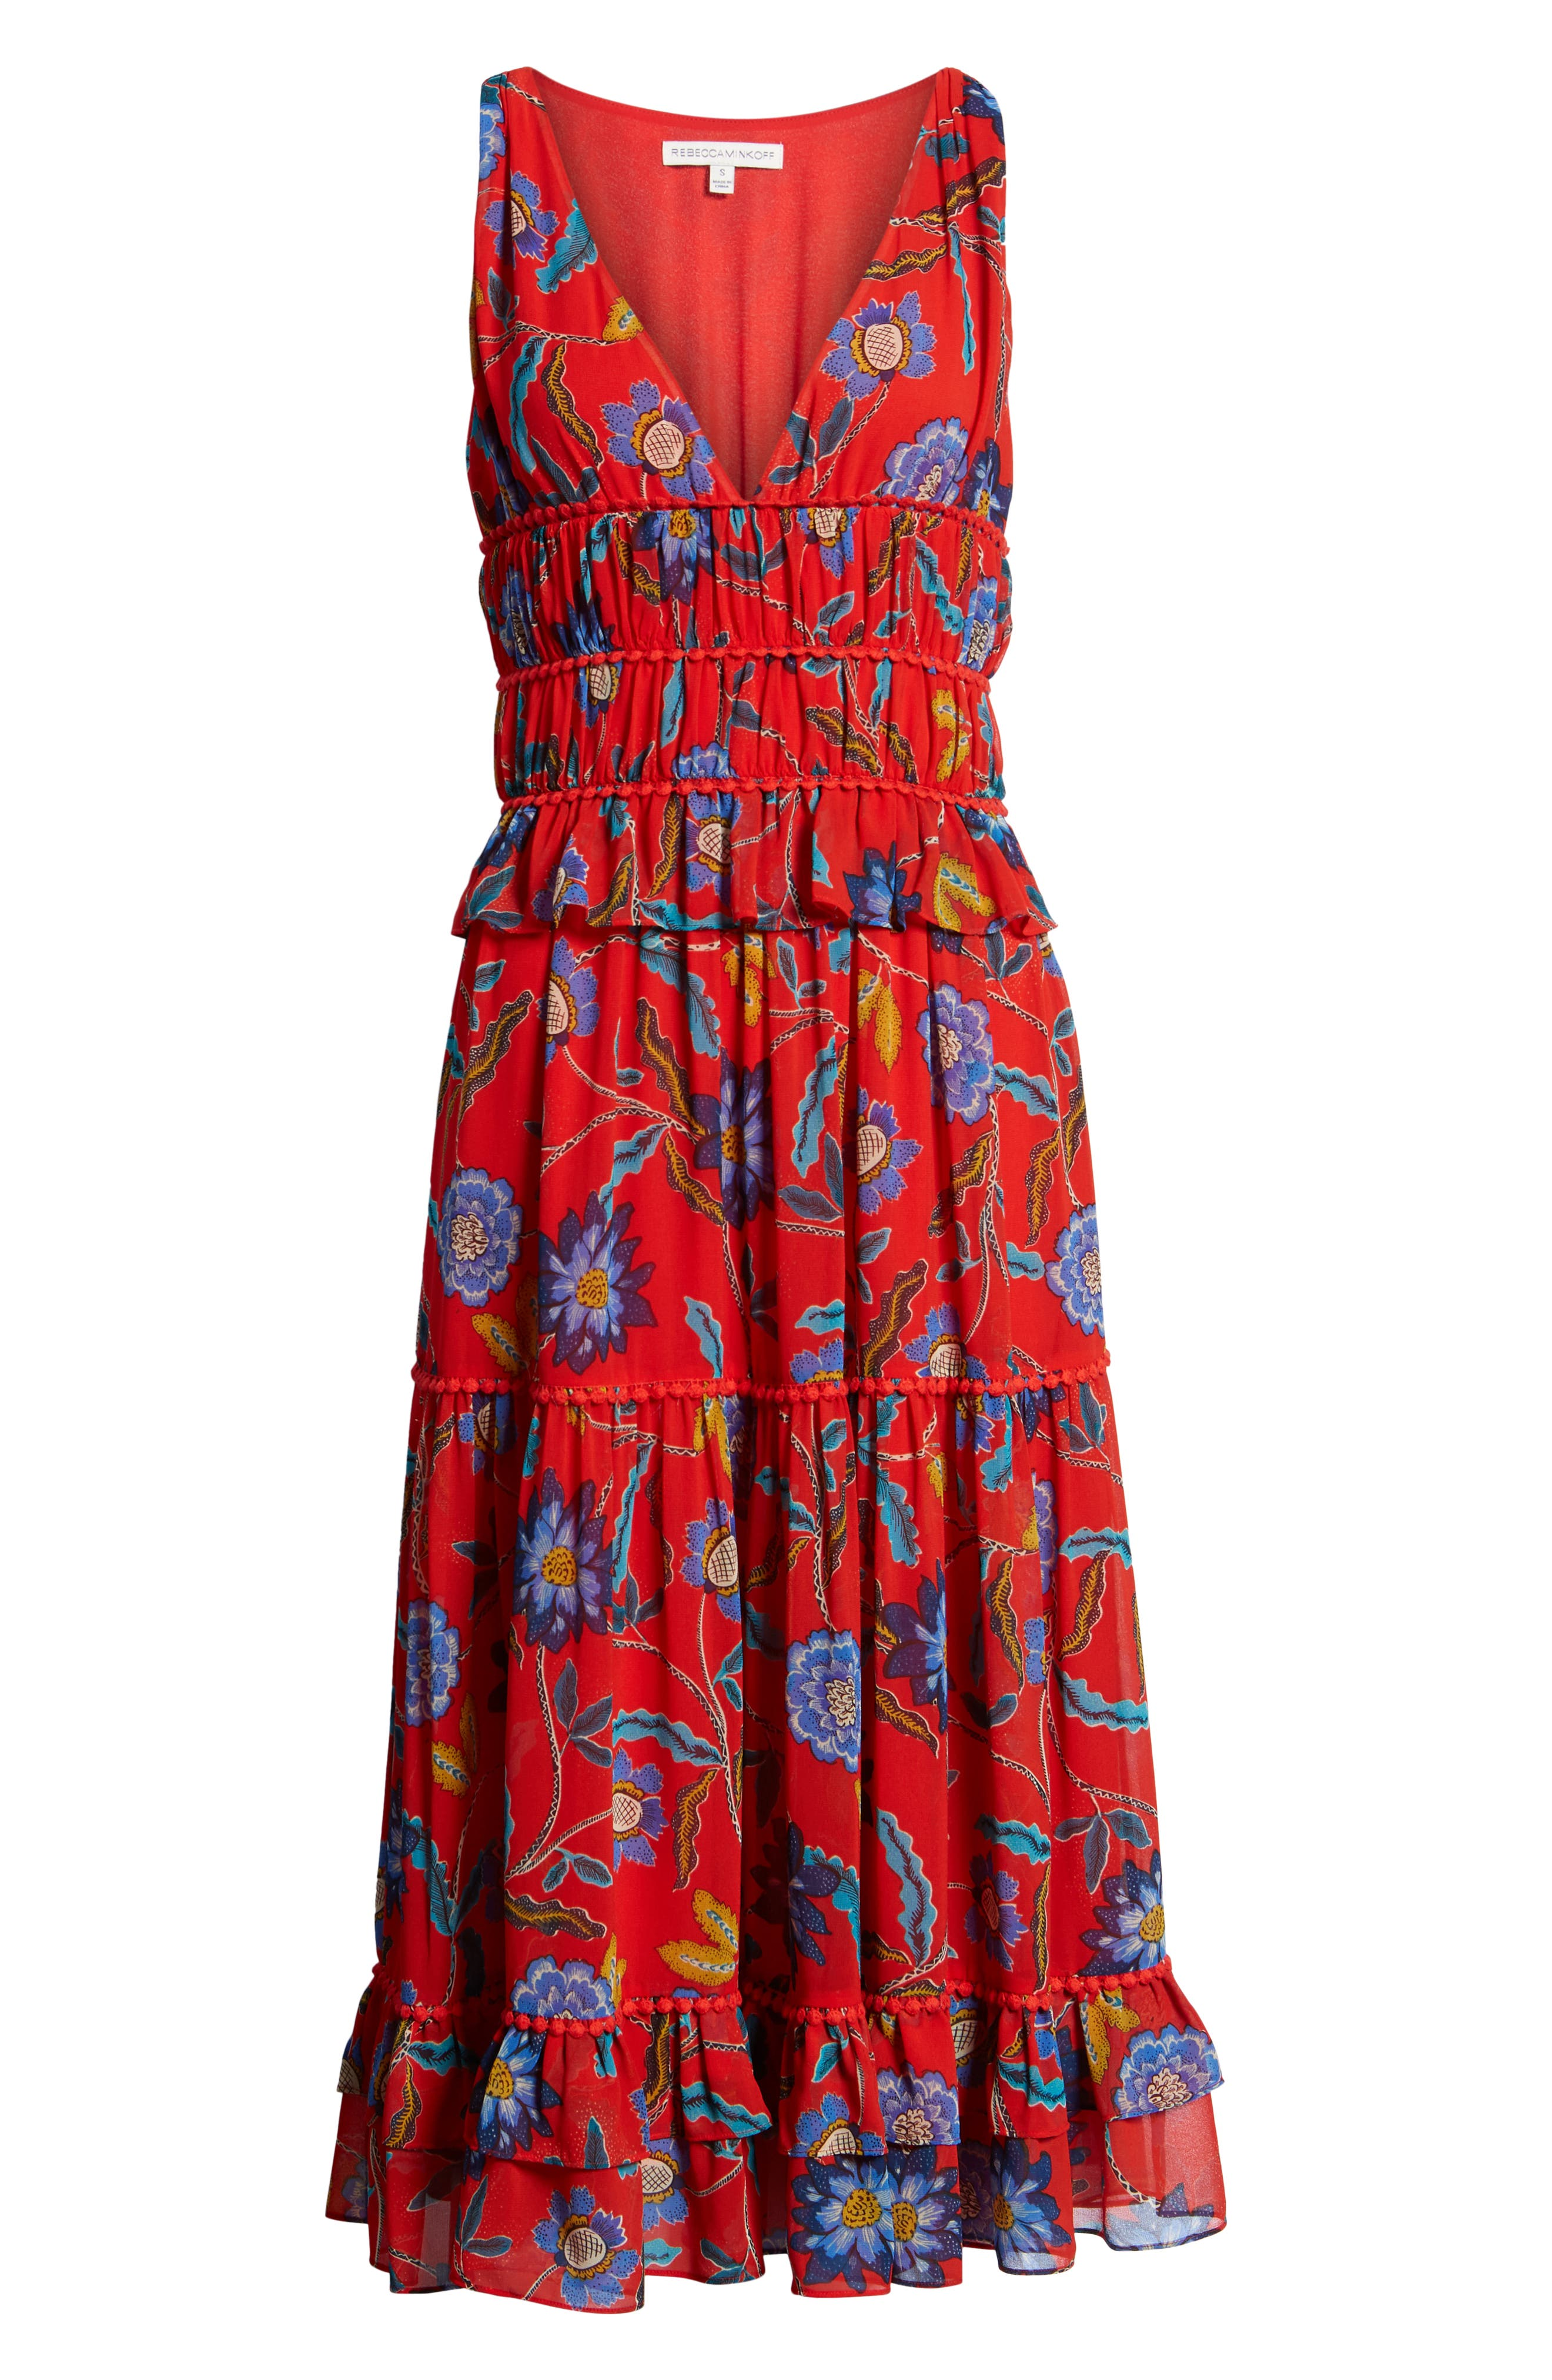 Lucy Floral Dress,                             Alternate thumbnail 6, color,                             Red Multi